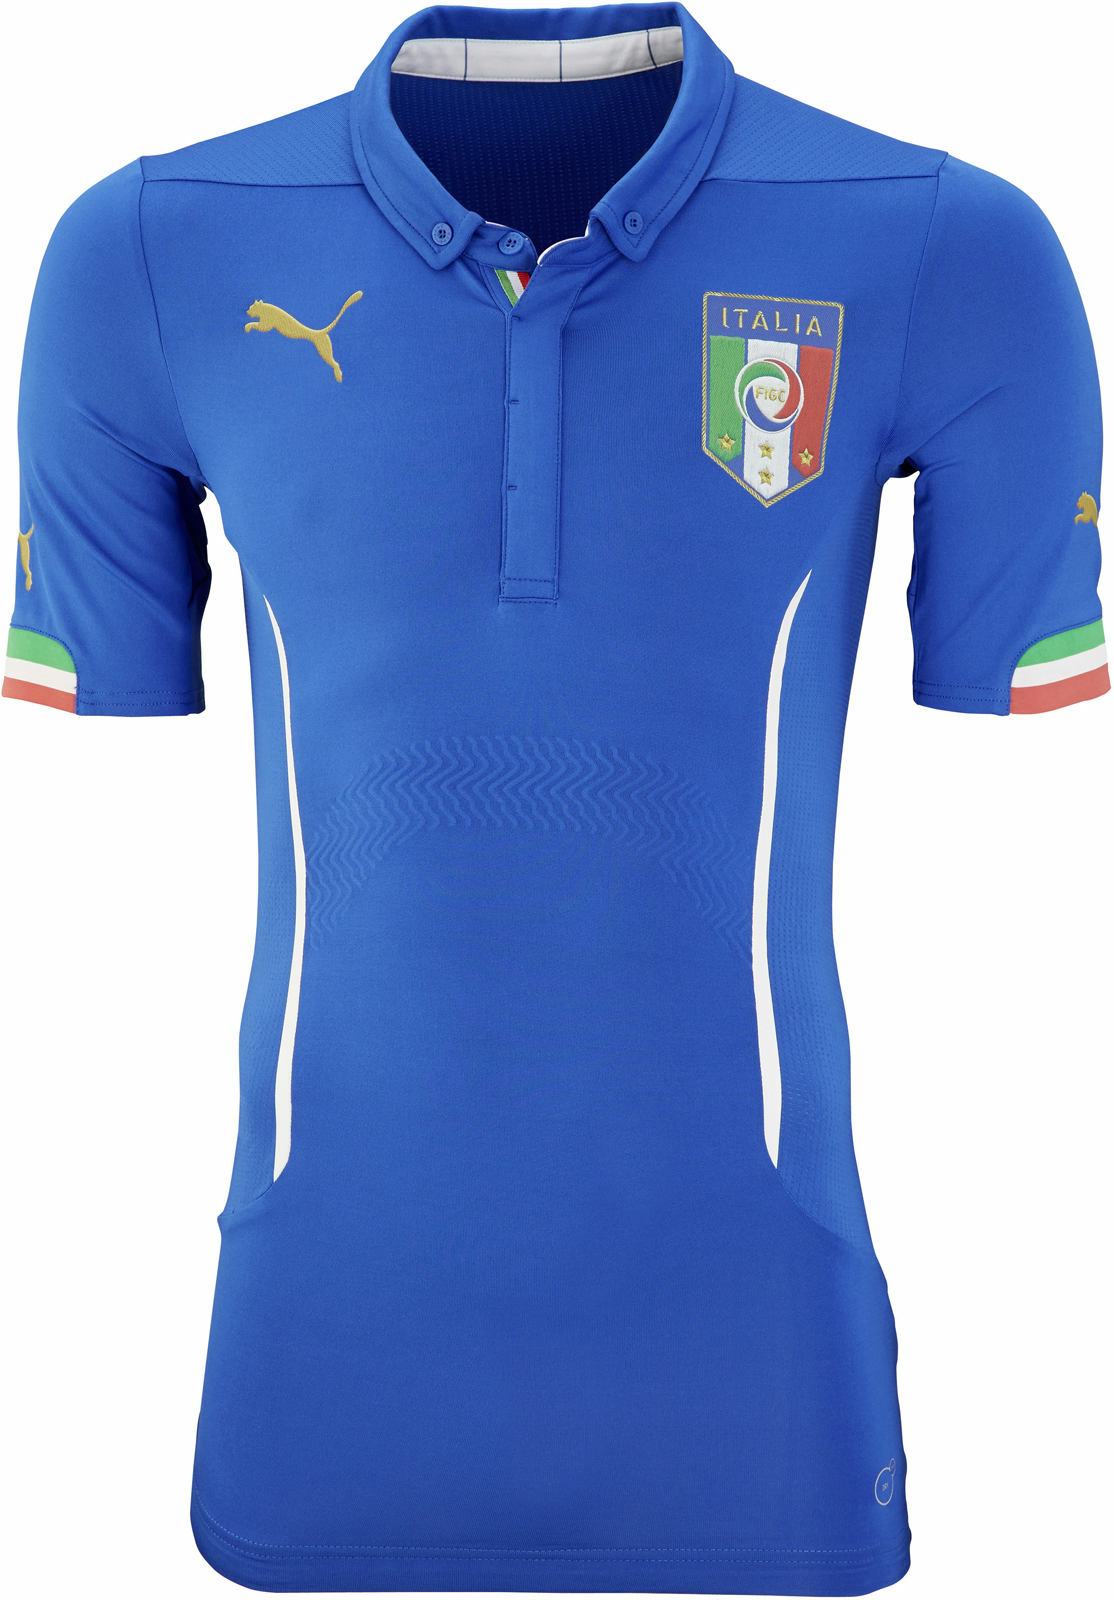 puma italy 2014 world cup home and away kits released